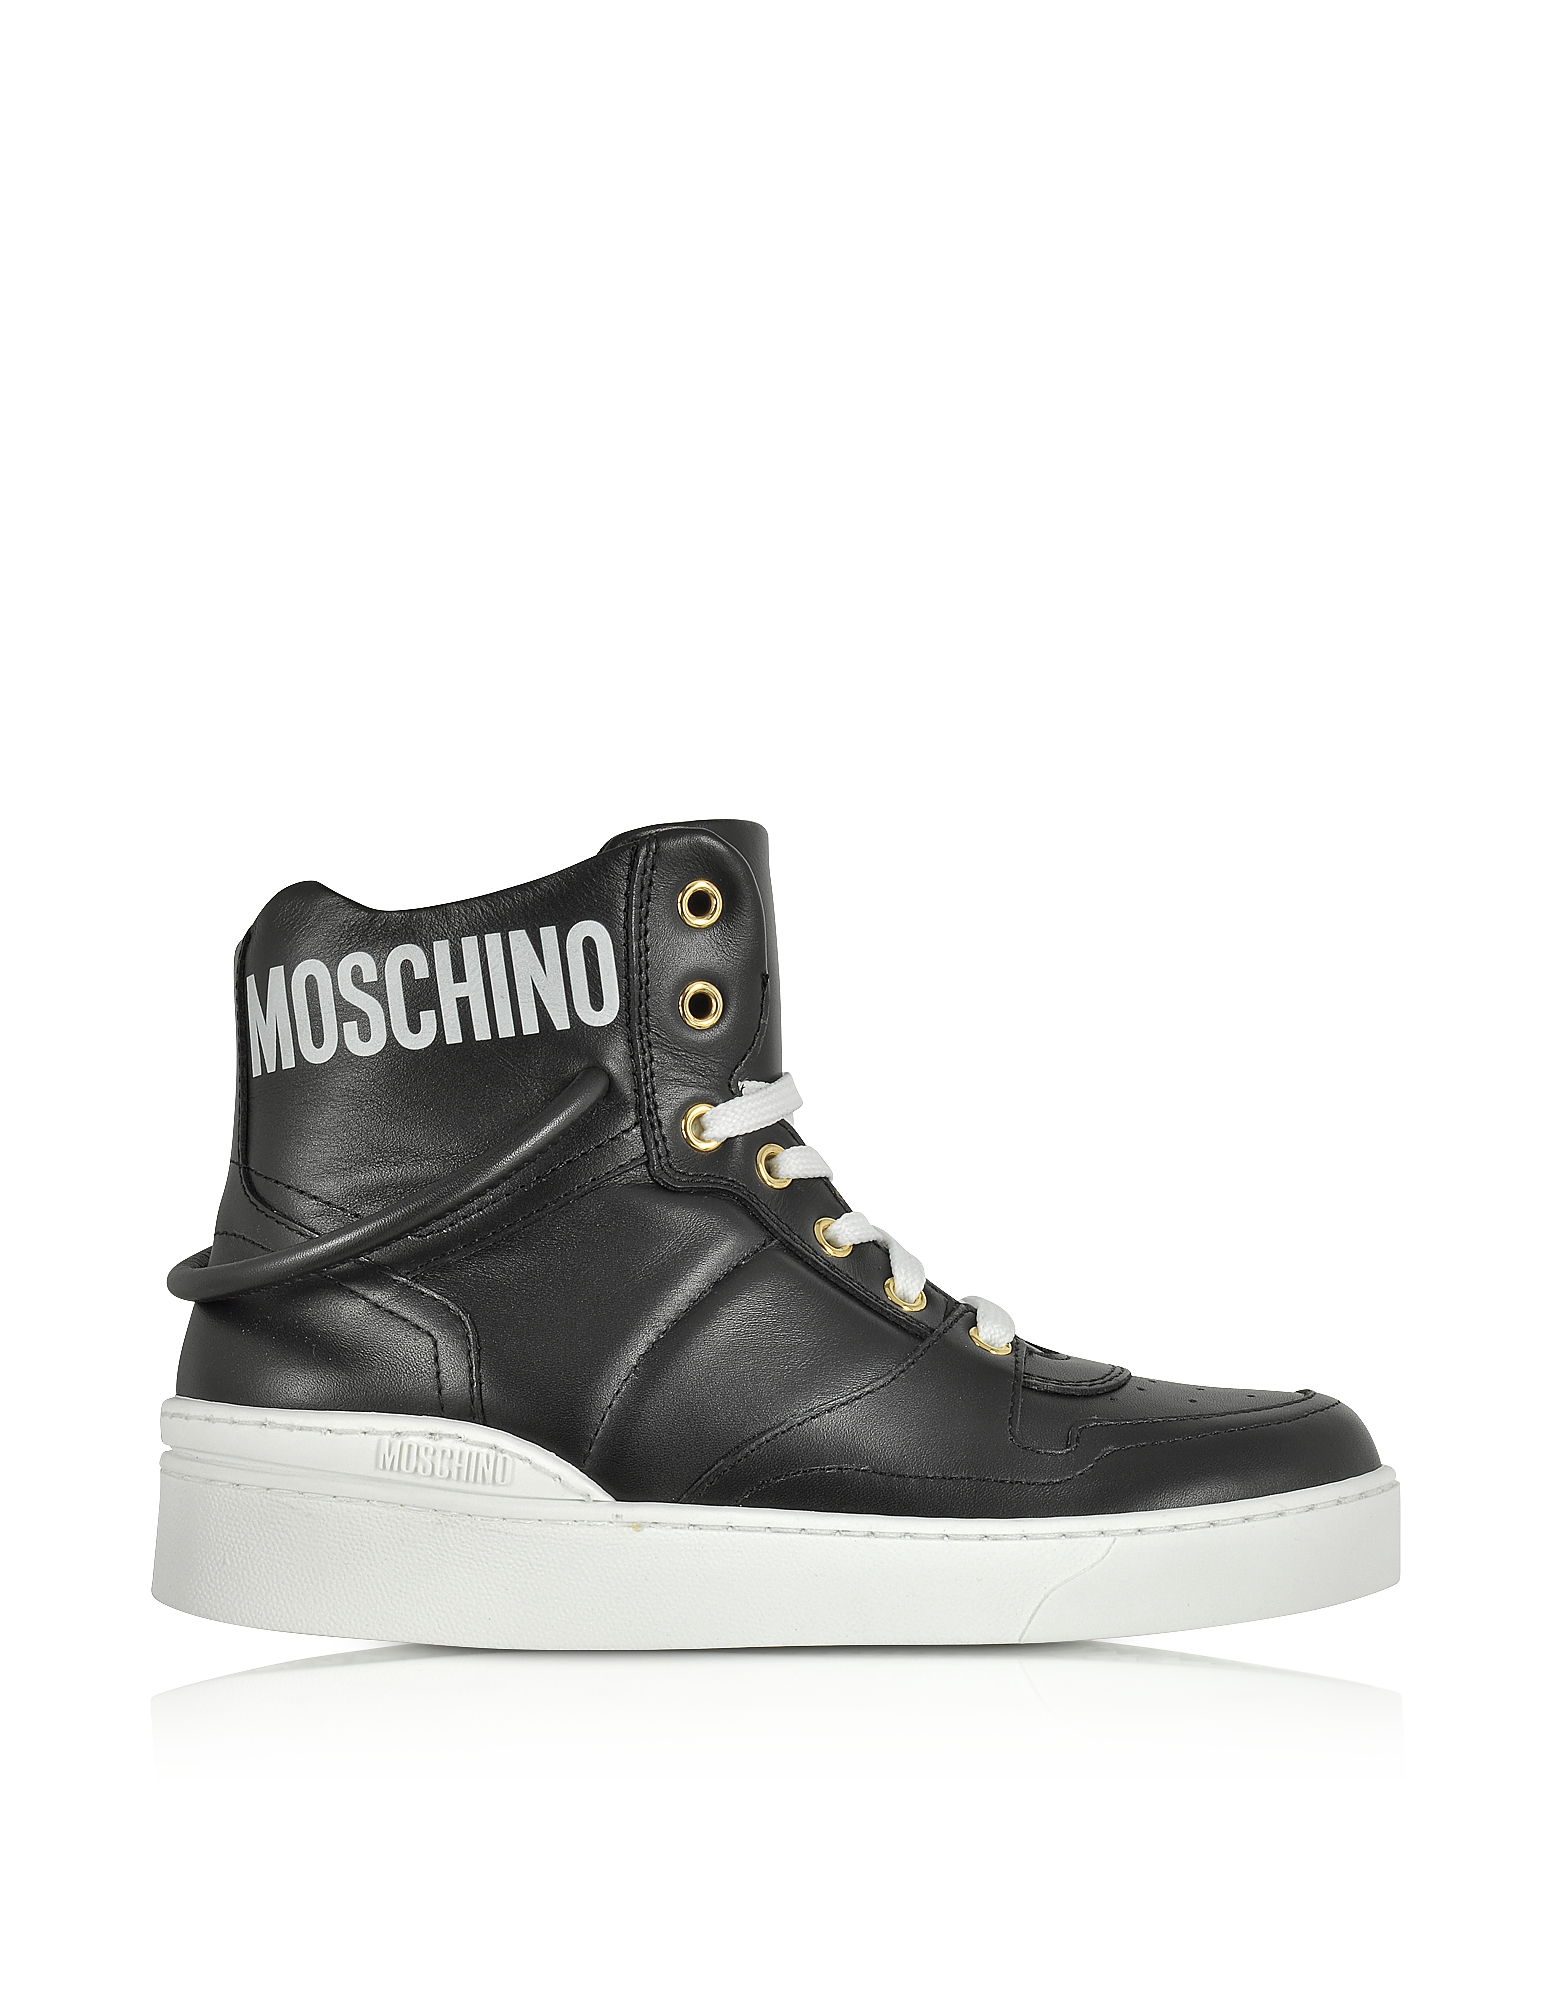 Moschino Shoes, Black Nappa Leather High Top Sneakers